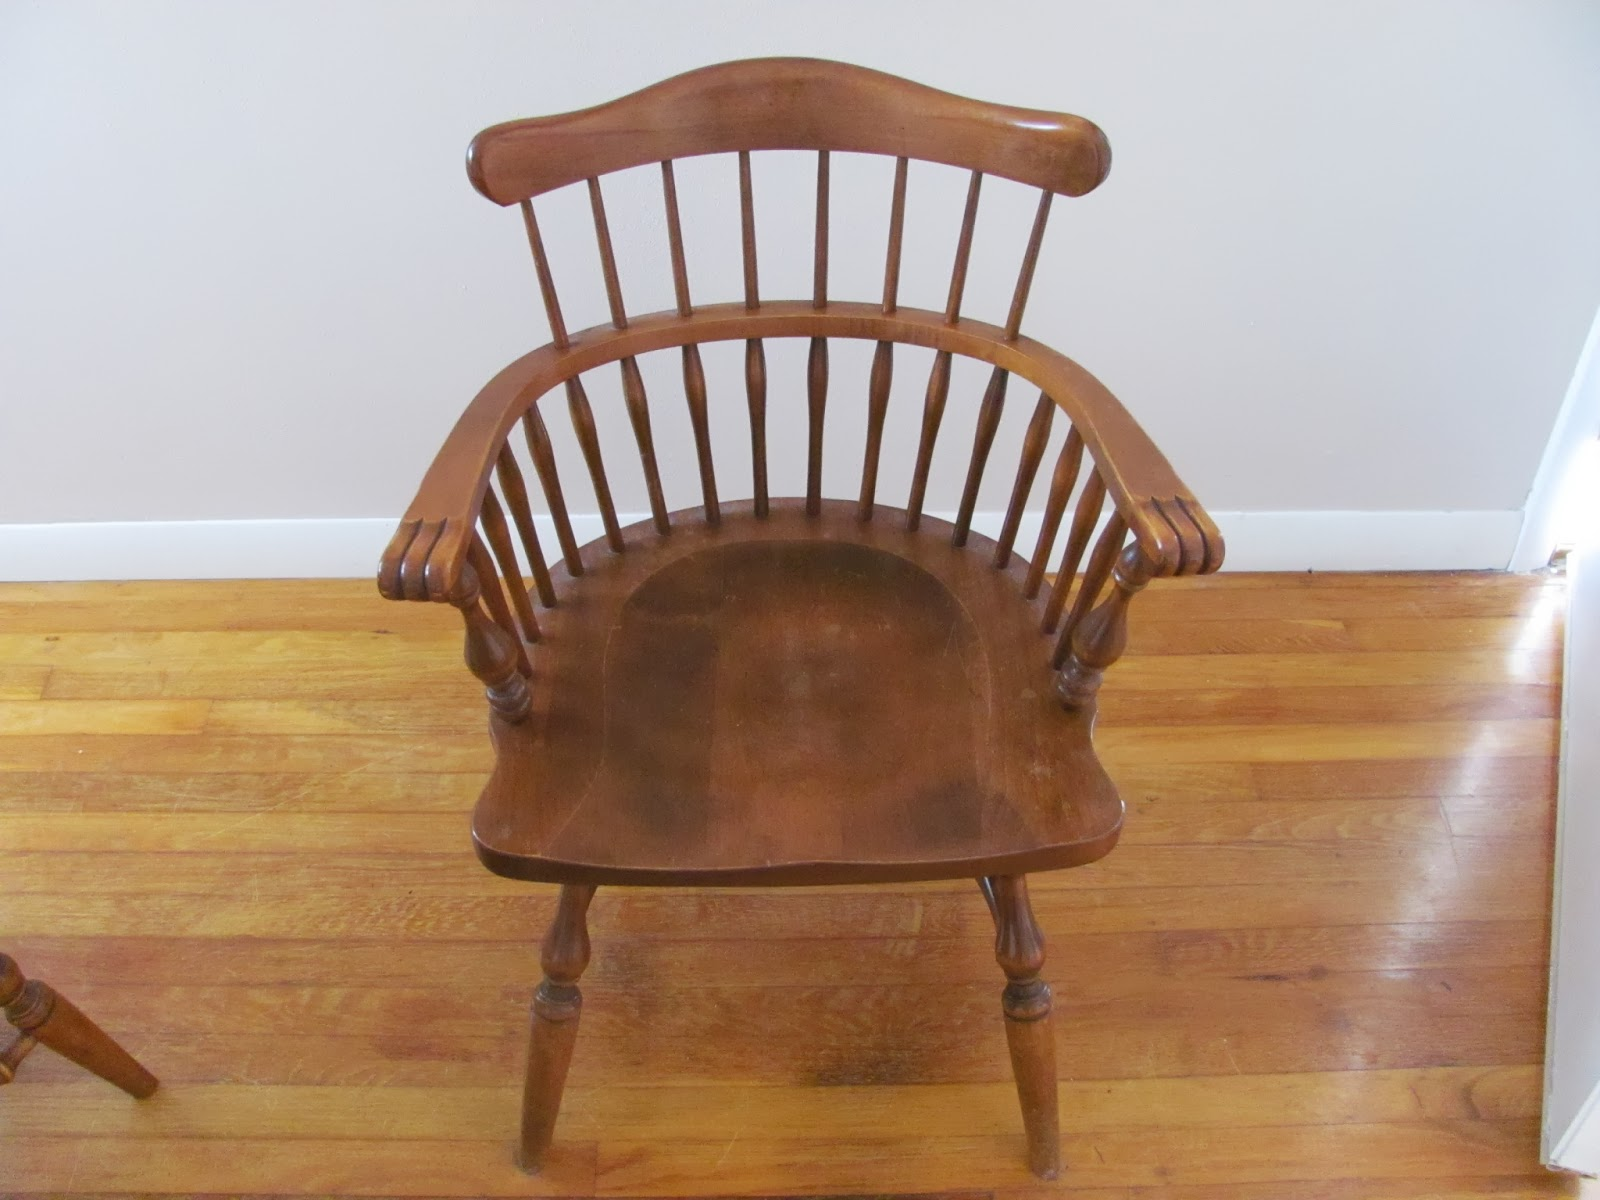 Captain's chair as part of a dining set from Ethan Allen before being sold on Craigslist